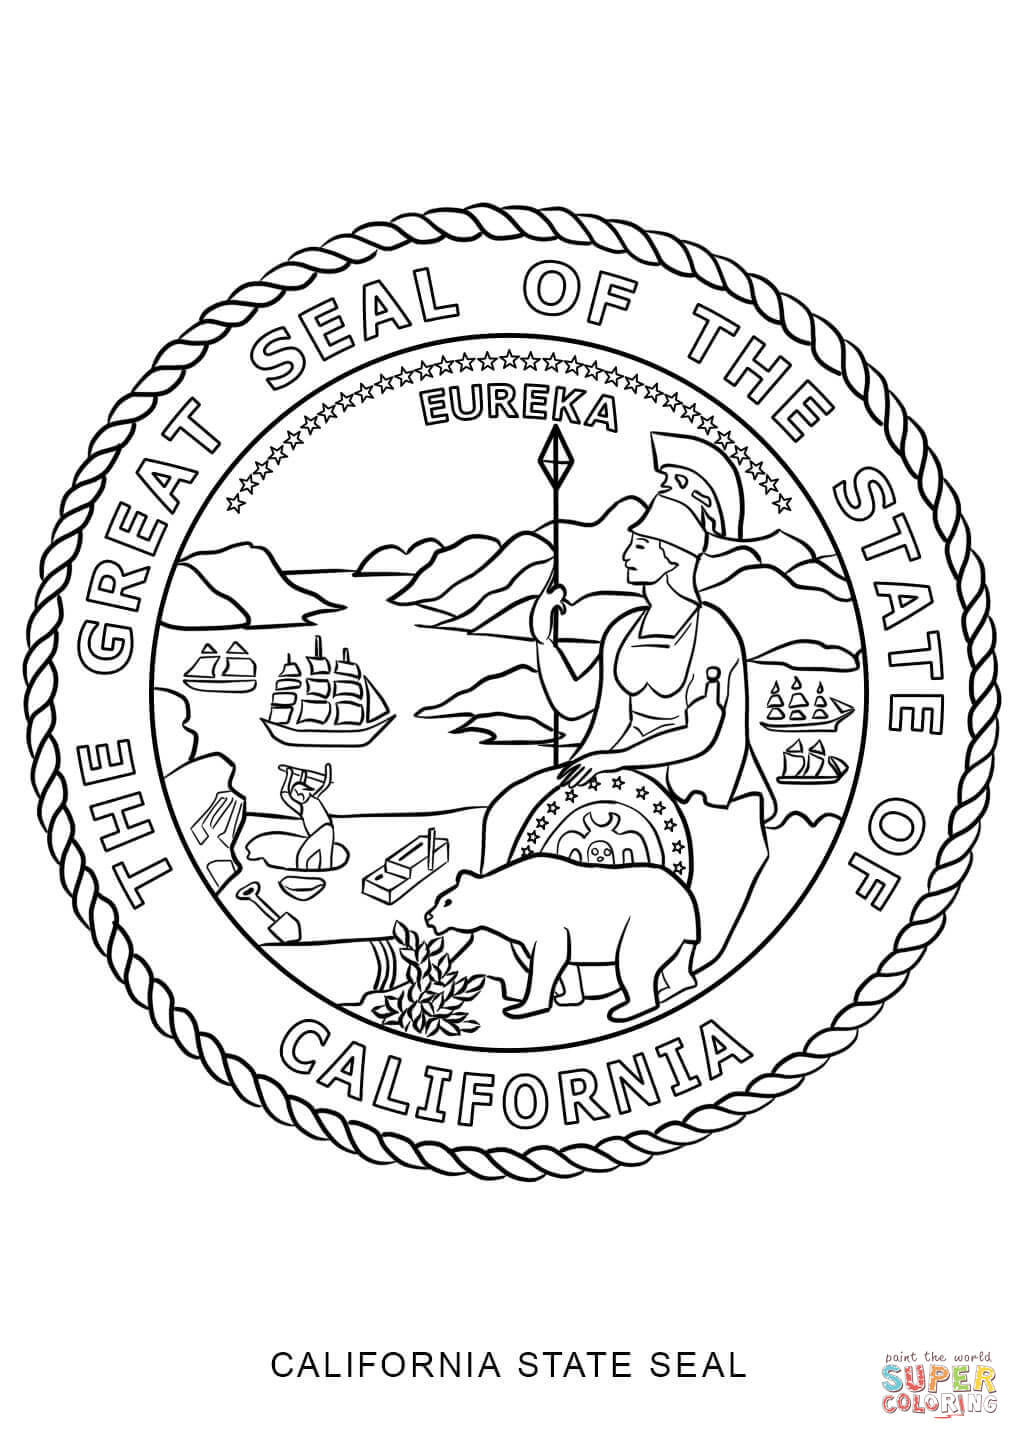 california state symbols coloring pages california state symbols coloring page free printable symbols pages california coloring state